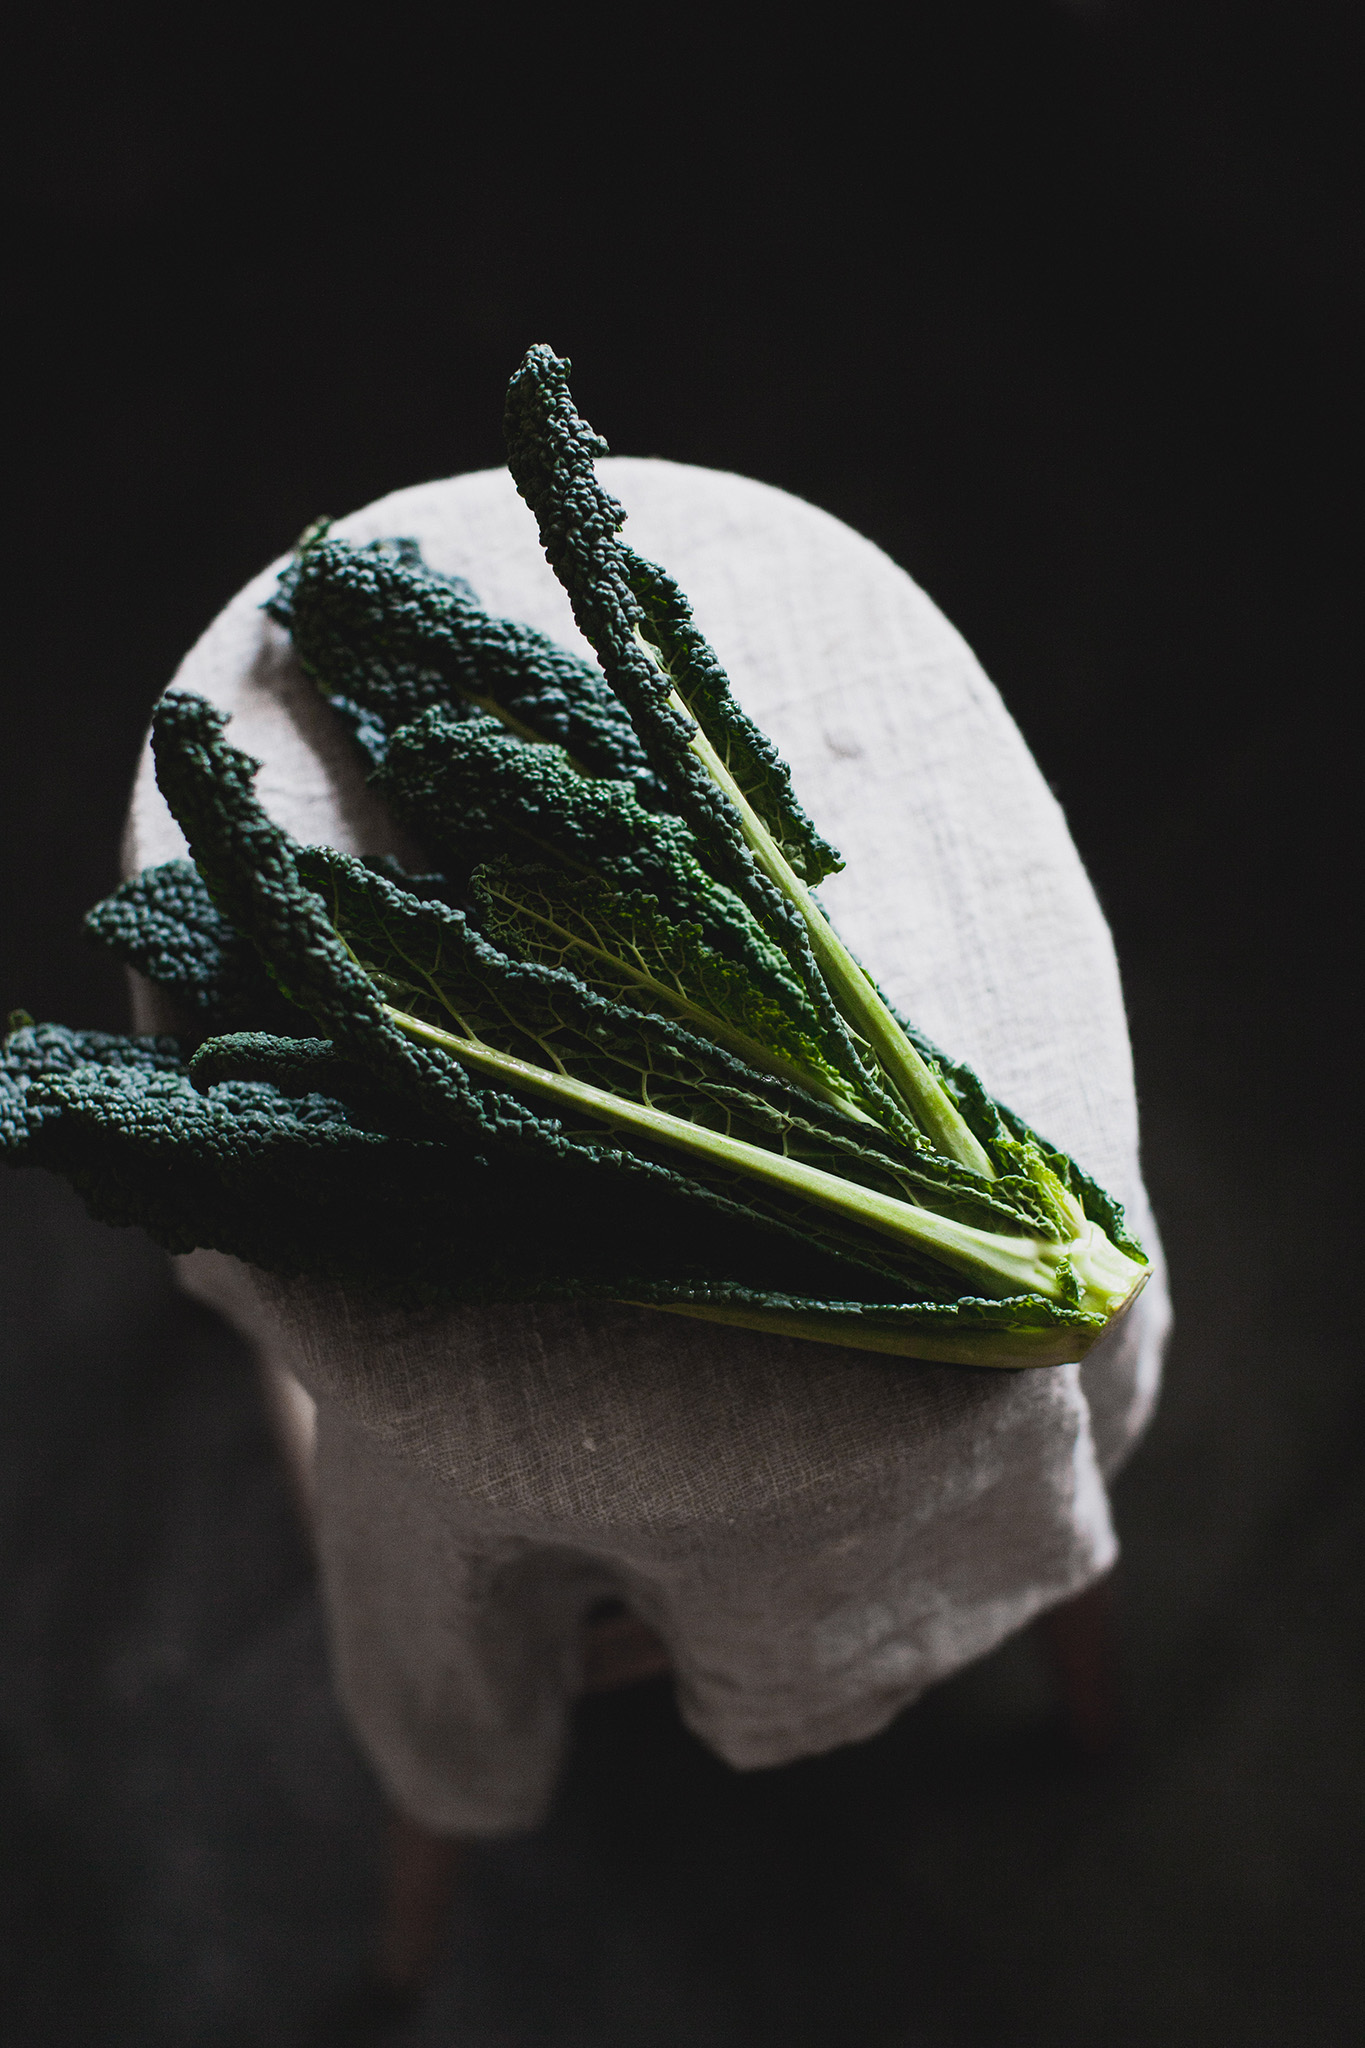 Cavolo nero - veg box inspiration from Retreat // a UK food & Lifestyle blog